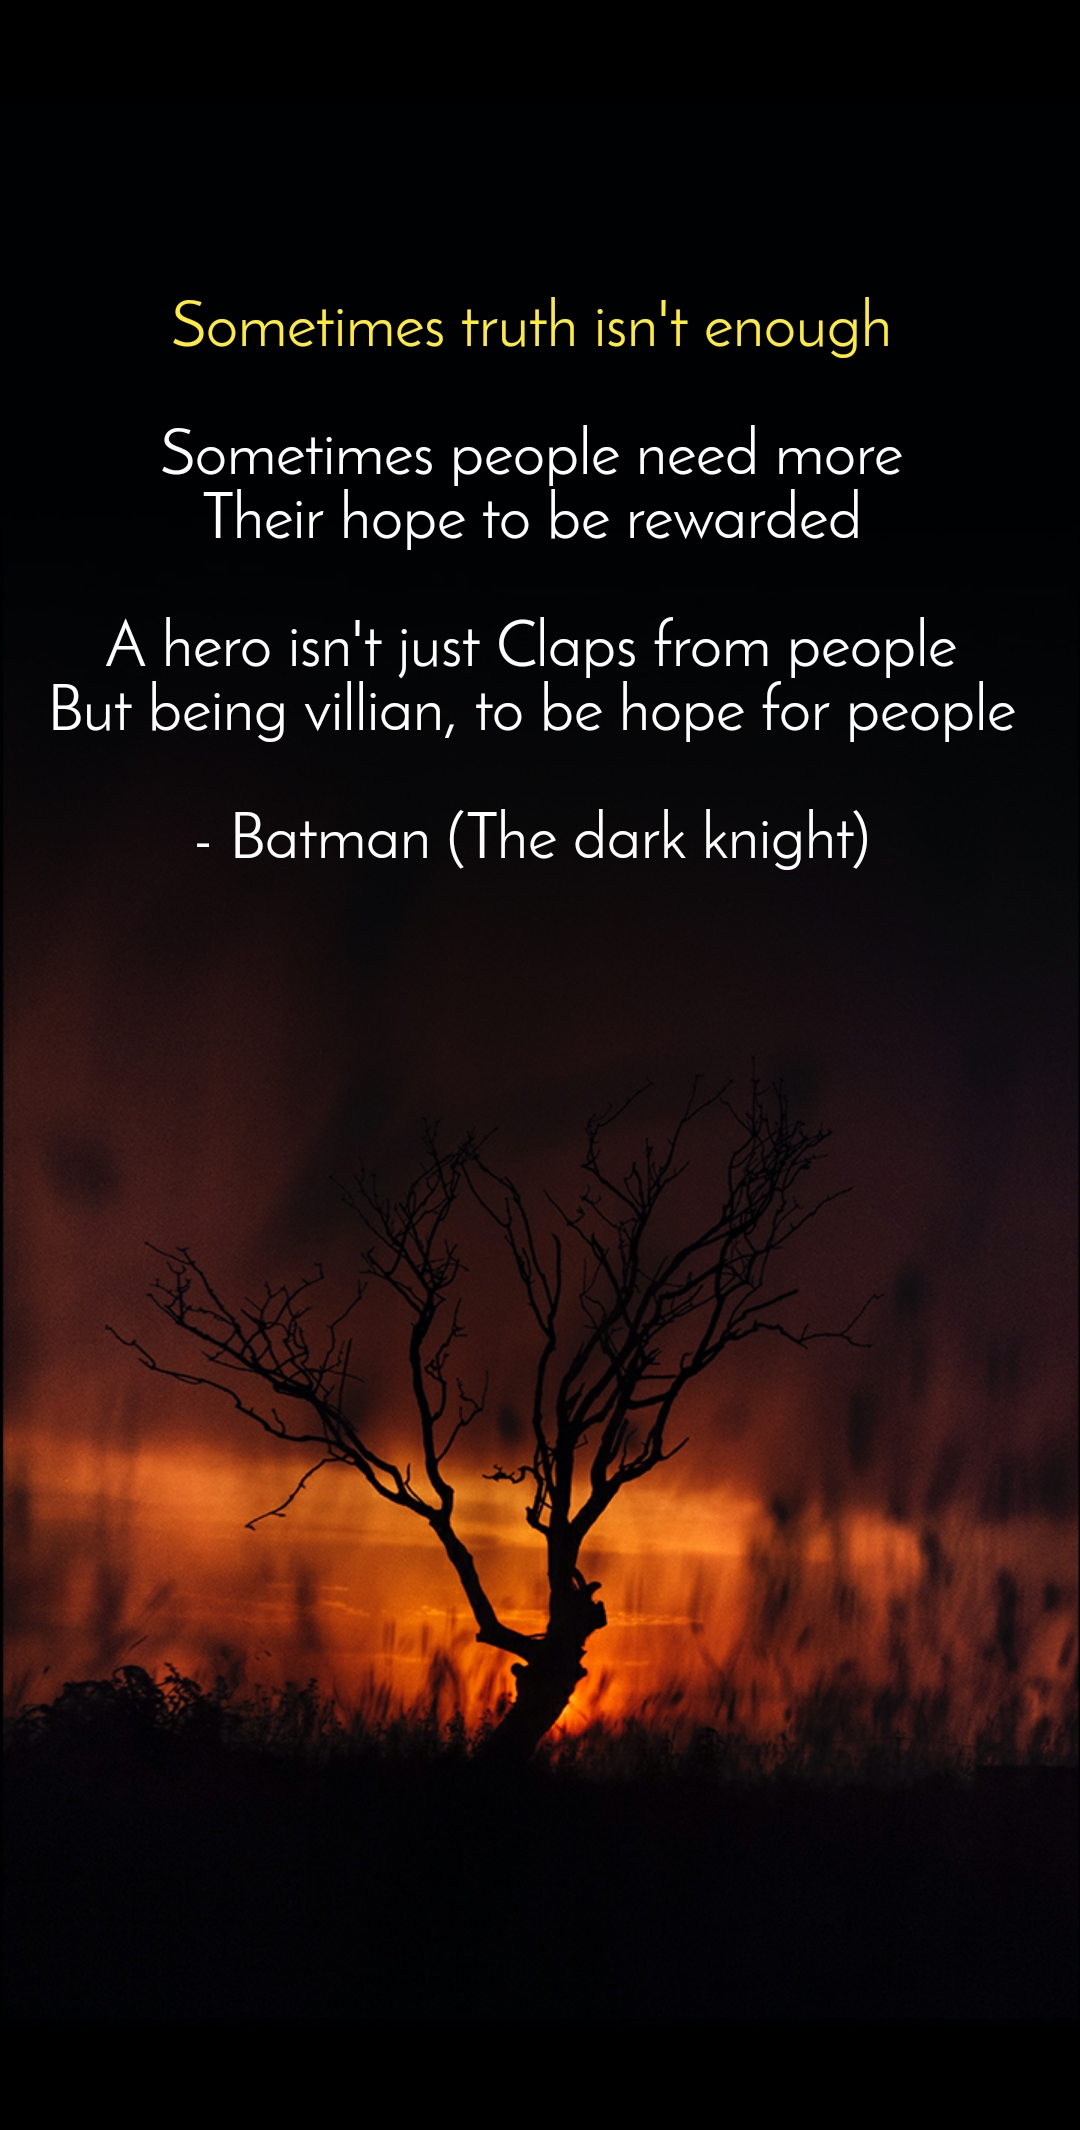 Sometimes truth isn't enough  Sometimes people need more Their hope to be rewarded  A hero isn't just Claps from people But being villian, to be hope for people  - Batman (The dark knight)